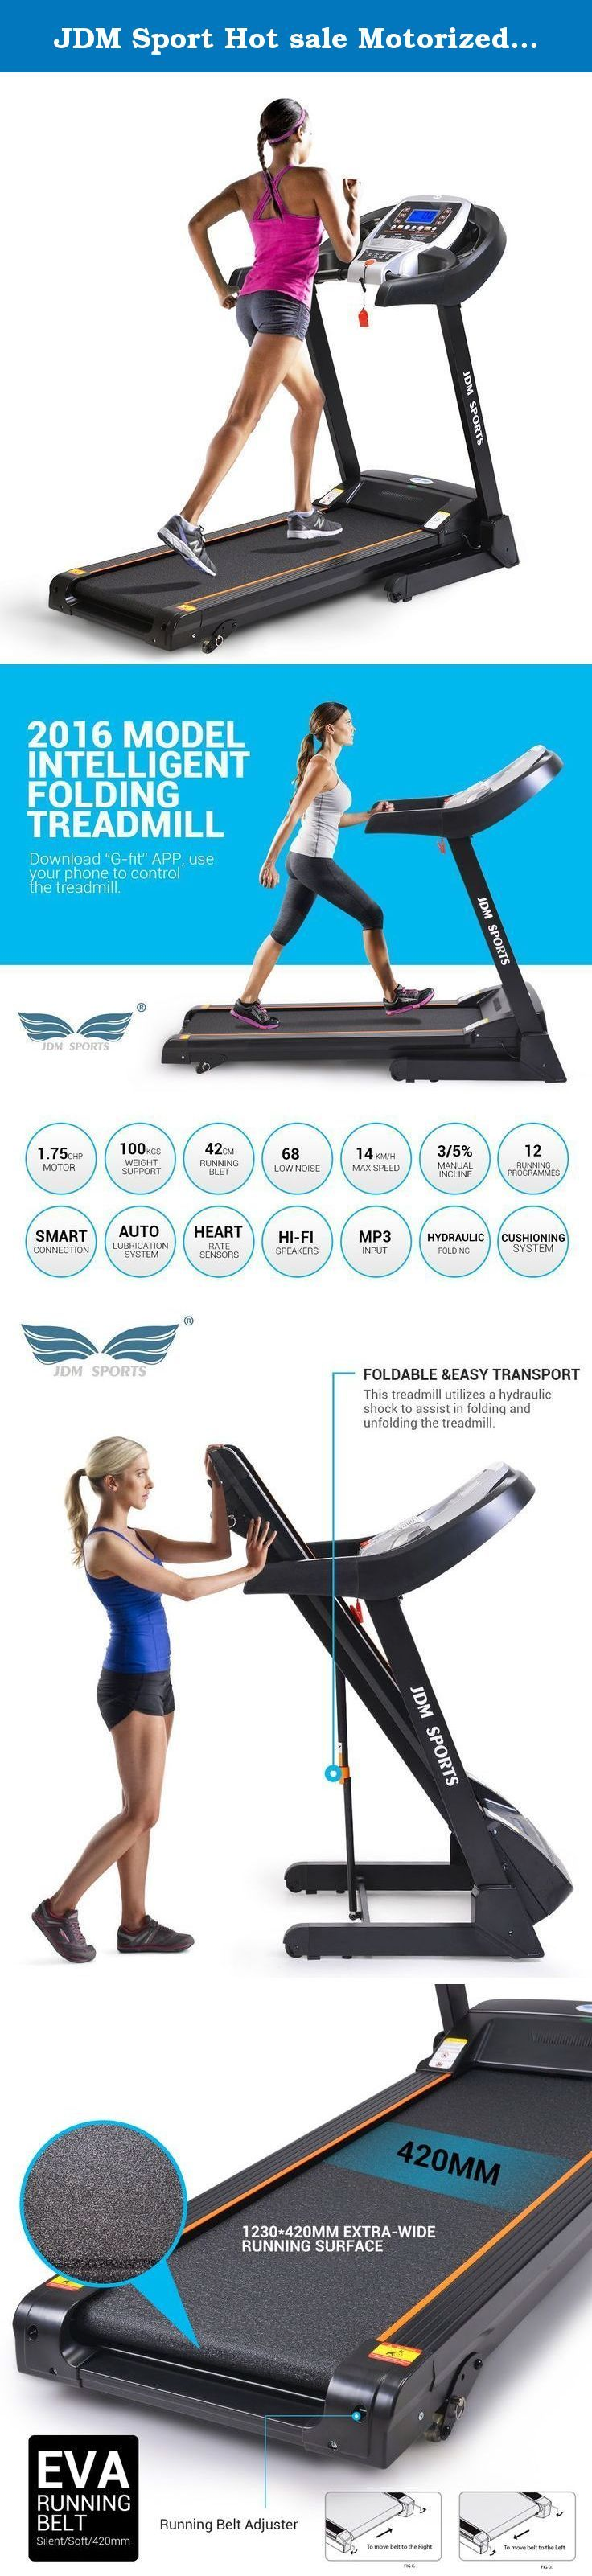 JDM Sport Hot sale Motorized treadmill bluetooth App Gfit folding home running machine. Home Treadmill fitness equipment Specification:(/b) Motor:DC 1.75HP Runing size:1230*420mm/48.462*16.548inches Speed:1.0-14KM/H Incline:3/5 two level manual incline Function:MP3,Bluetooth App Gfit,Auto Lubrication,Speaker. Max User Weight:100KGS£¨220.46LBS).